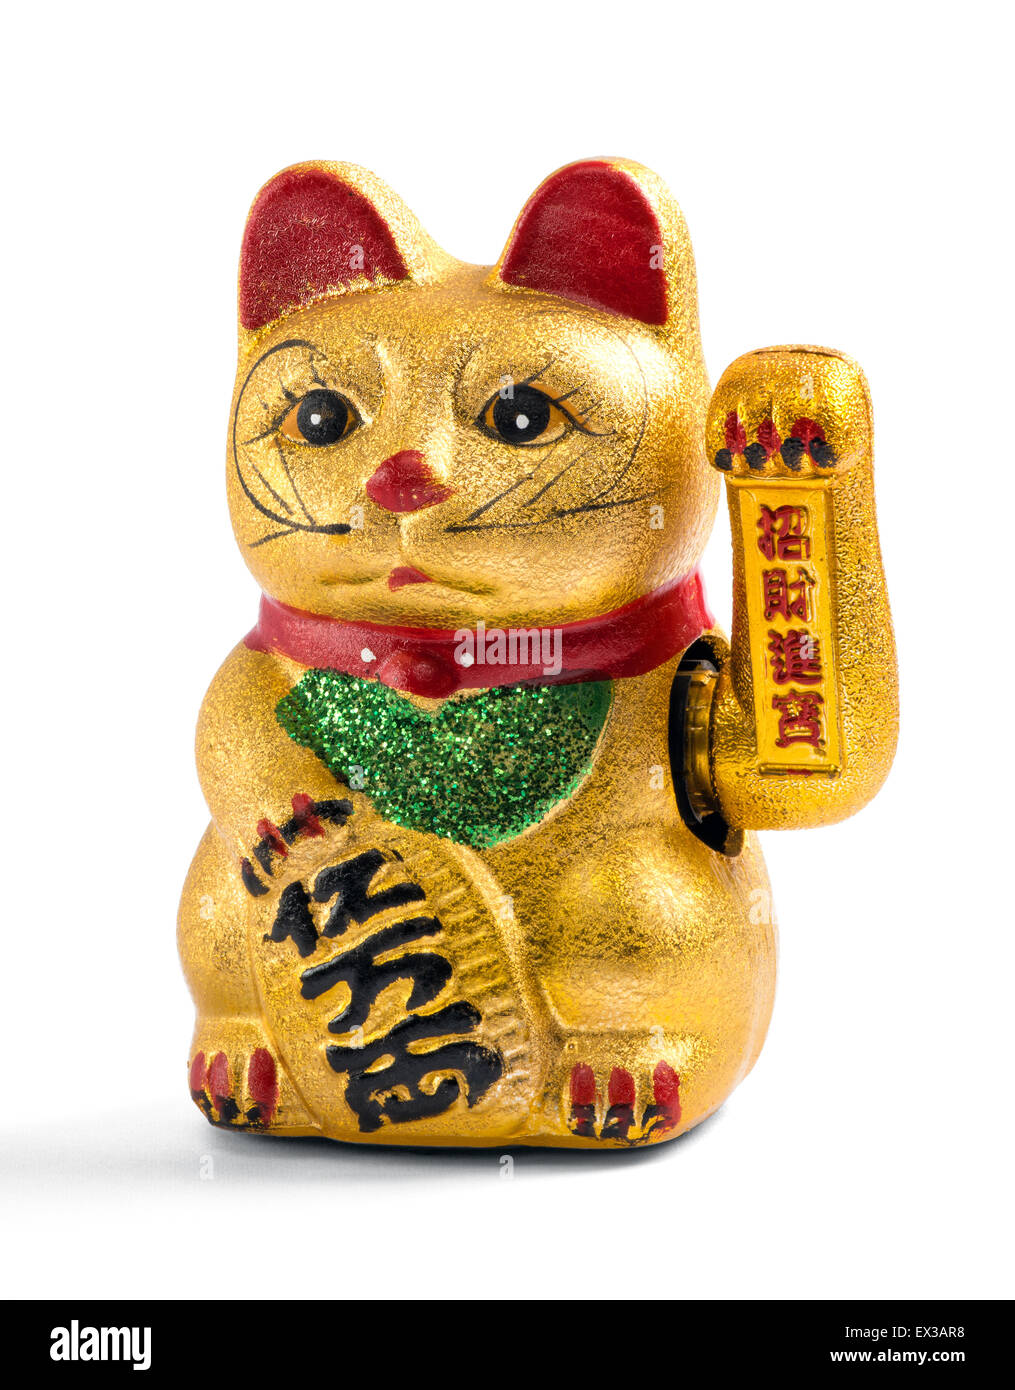 Gilded Chinese, Asian or Feng Shui lucky charm cat - Stock Image